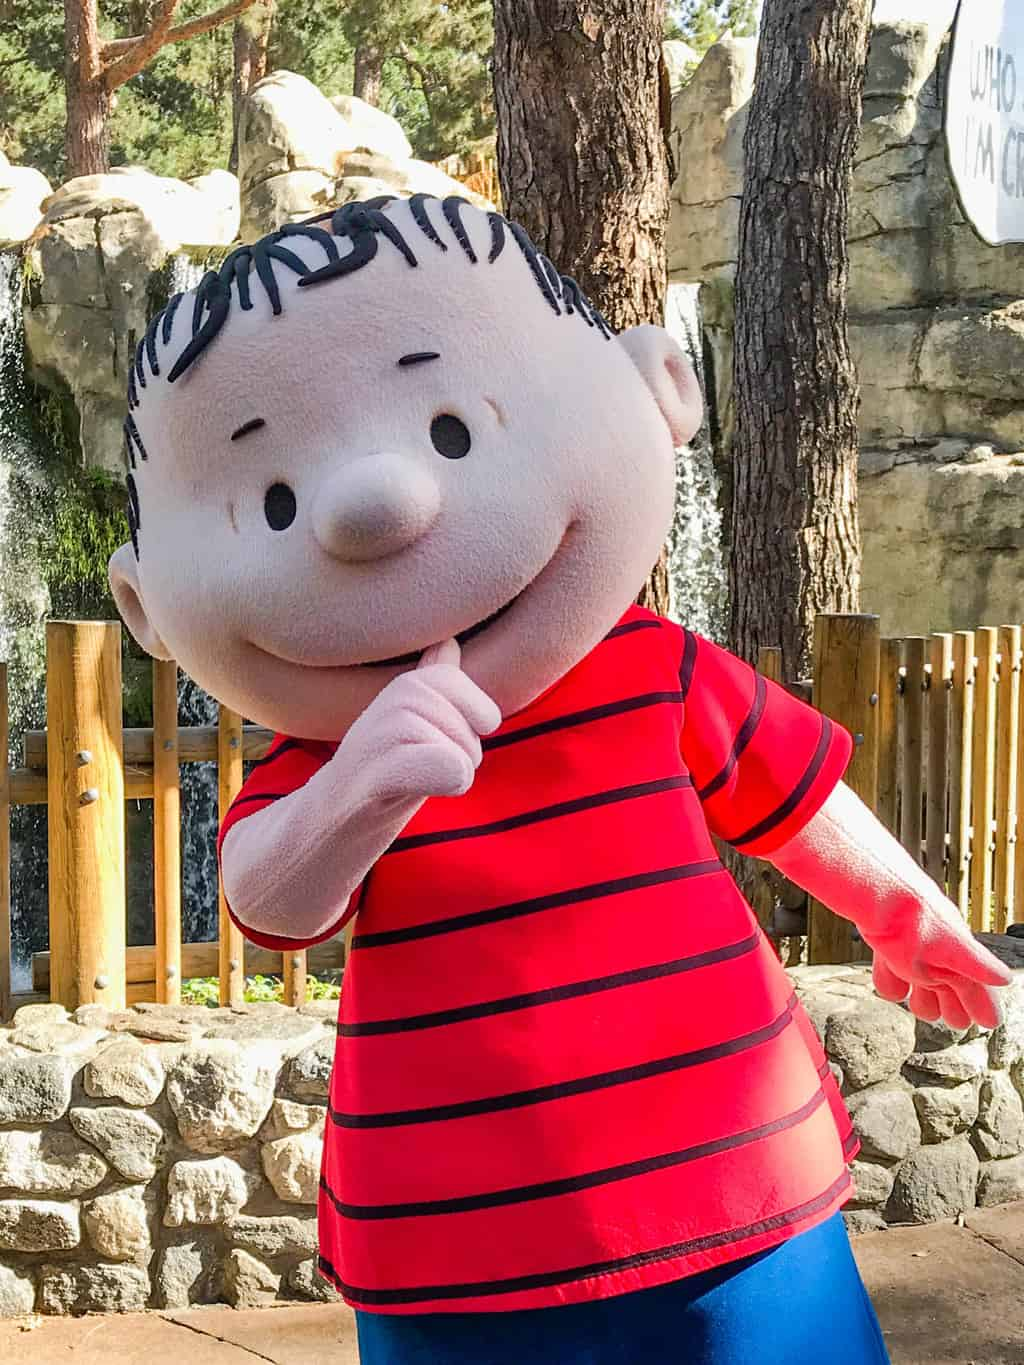 A picture of the Peanuts Character Linus sucking his thumb.